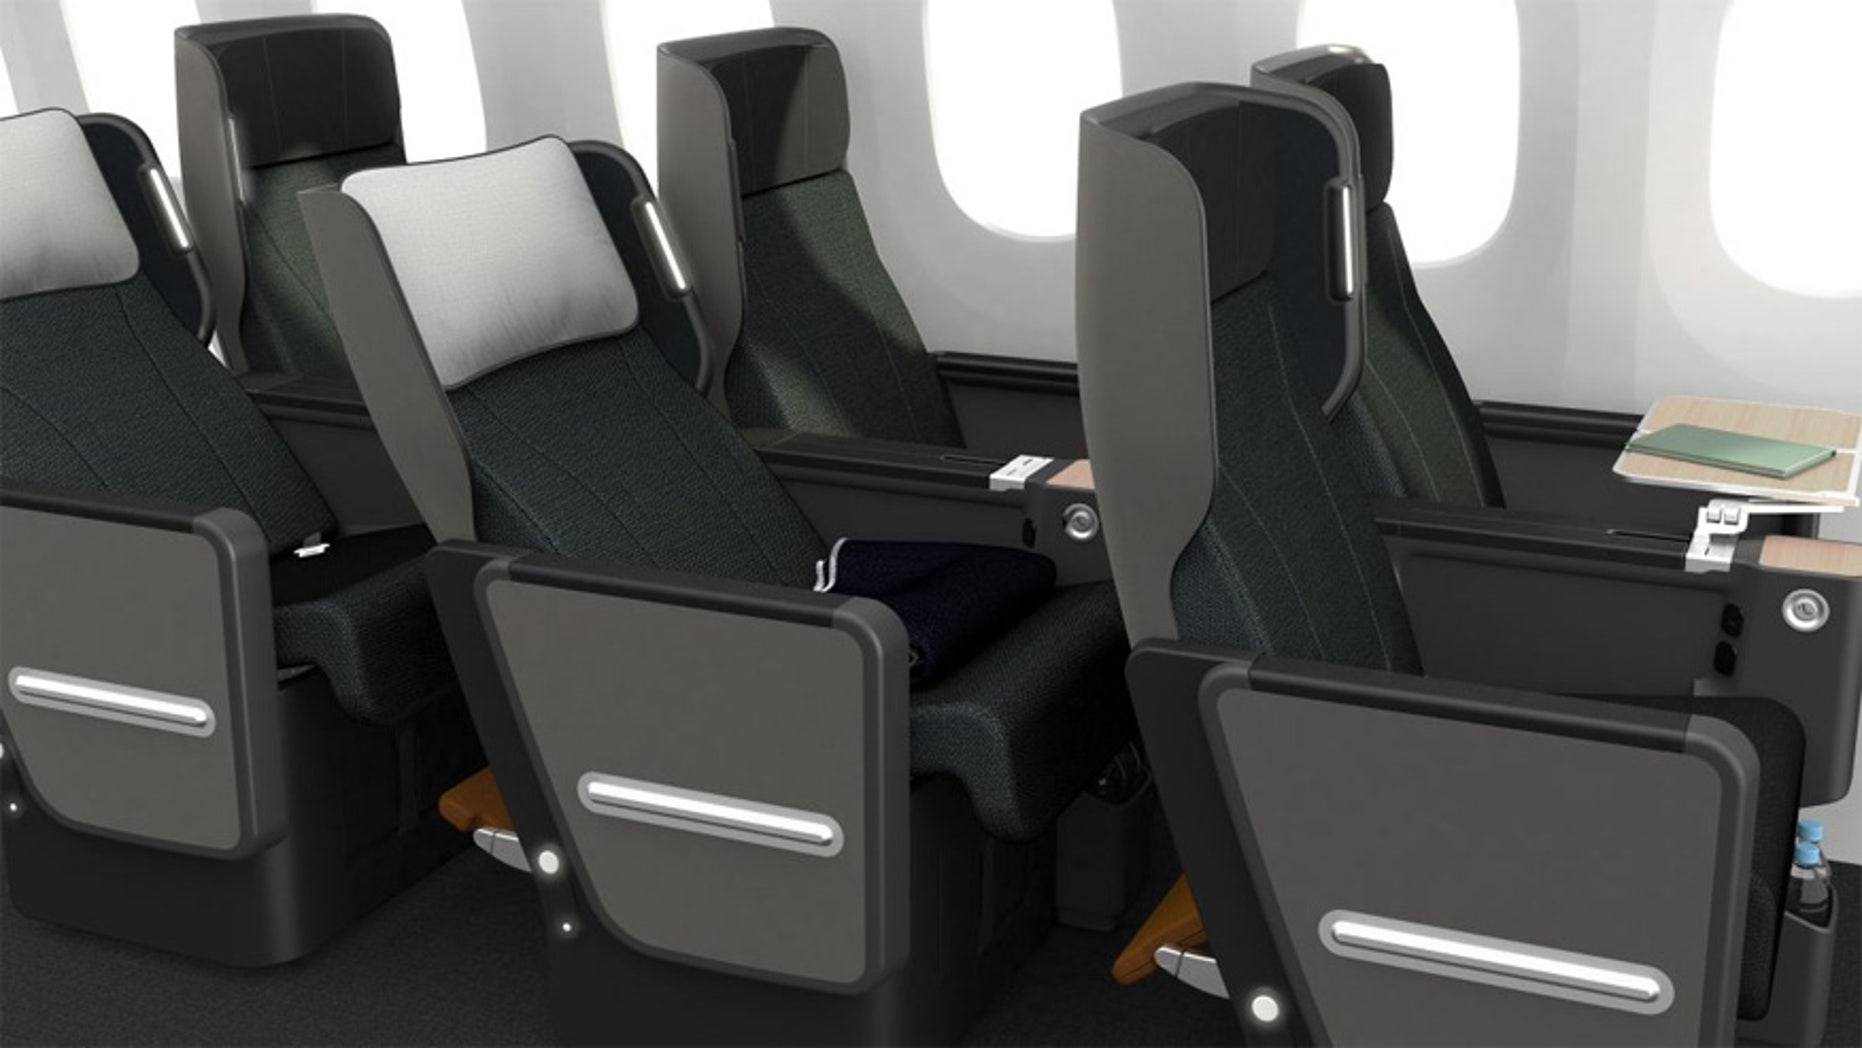 Qantas' next generation of Premium Economy seat will debut on the airline's 787-9 Dreamliners.